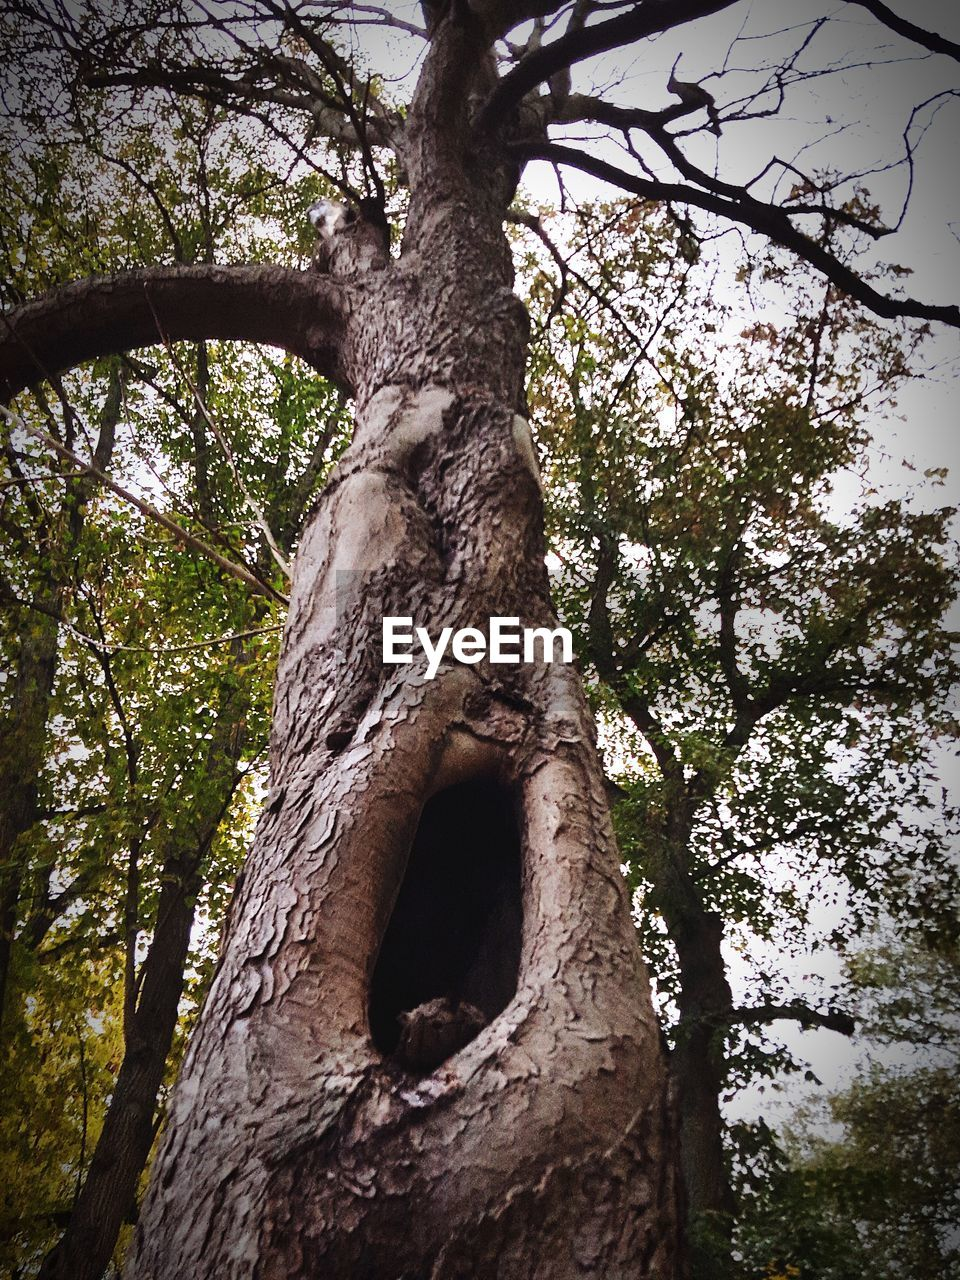 tree, plant, tree trunk, trunk, low angle view, branch, growth, nature, day, no people, sky, outdoors, tranquility, land, forest, beauty in nature, hole, textured, bark, focus on foreground, directly below, tree canopy